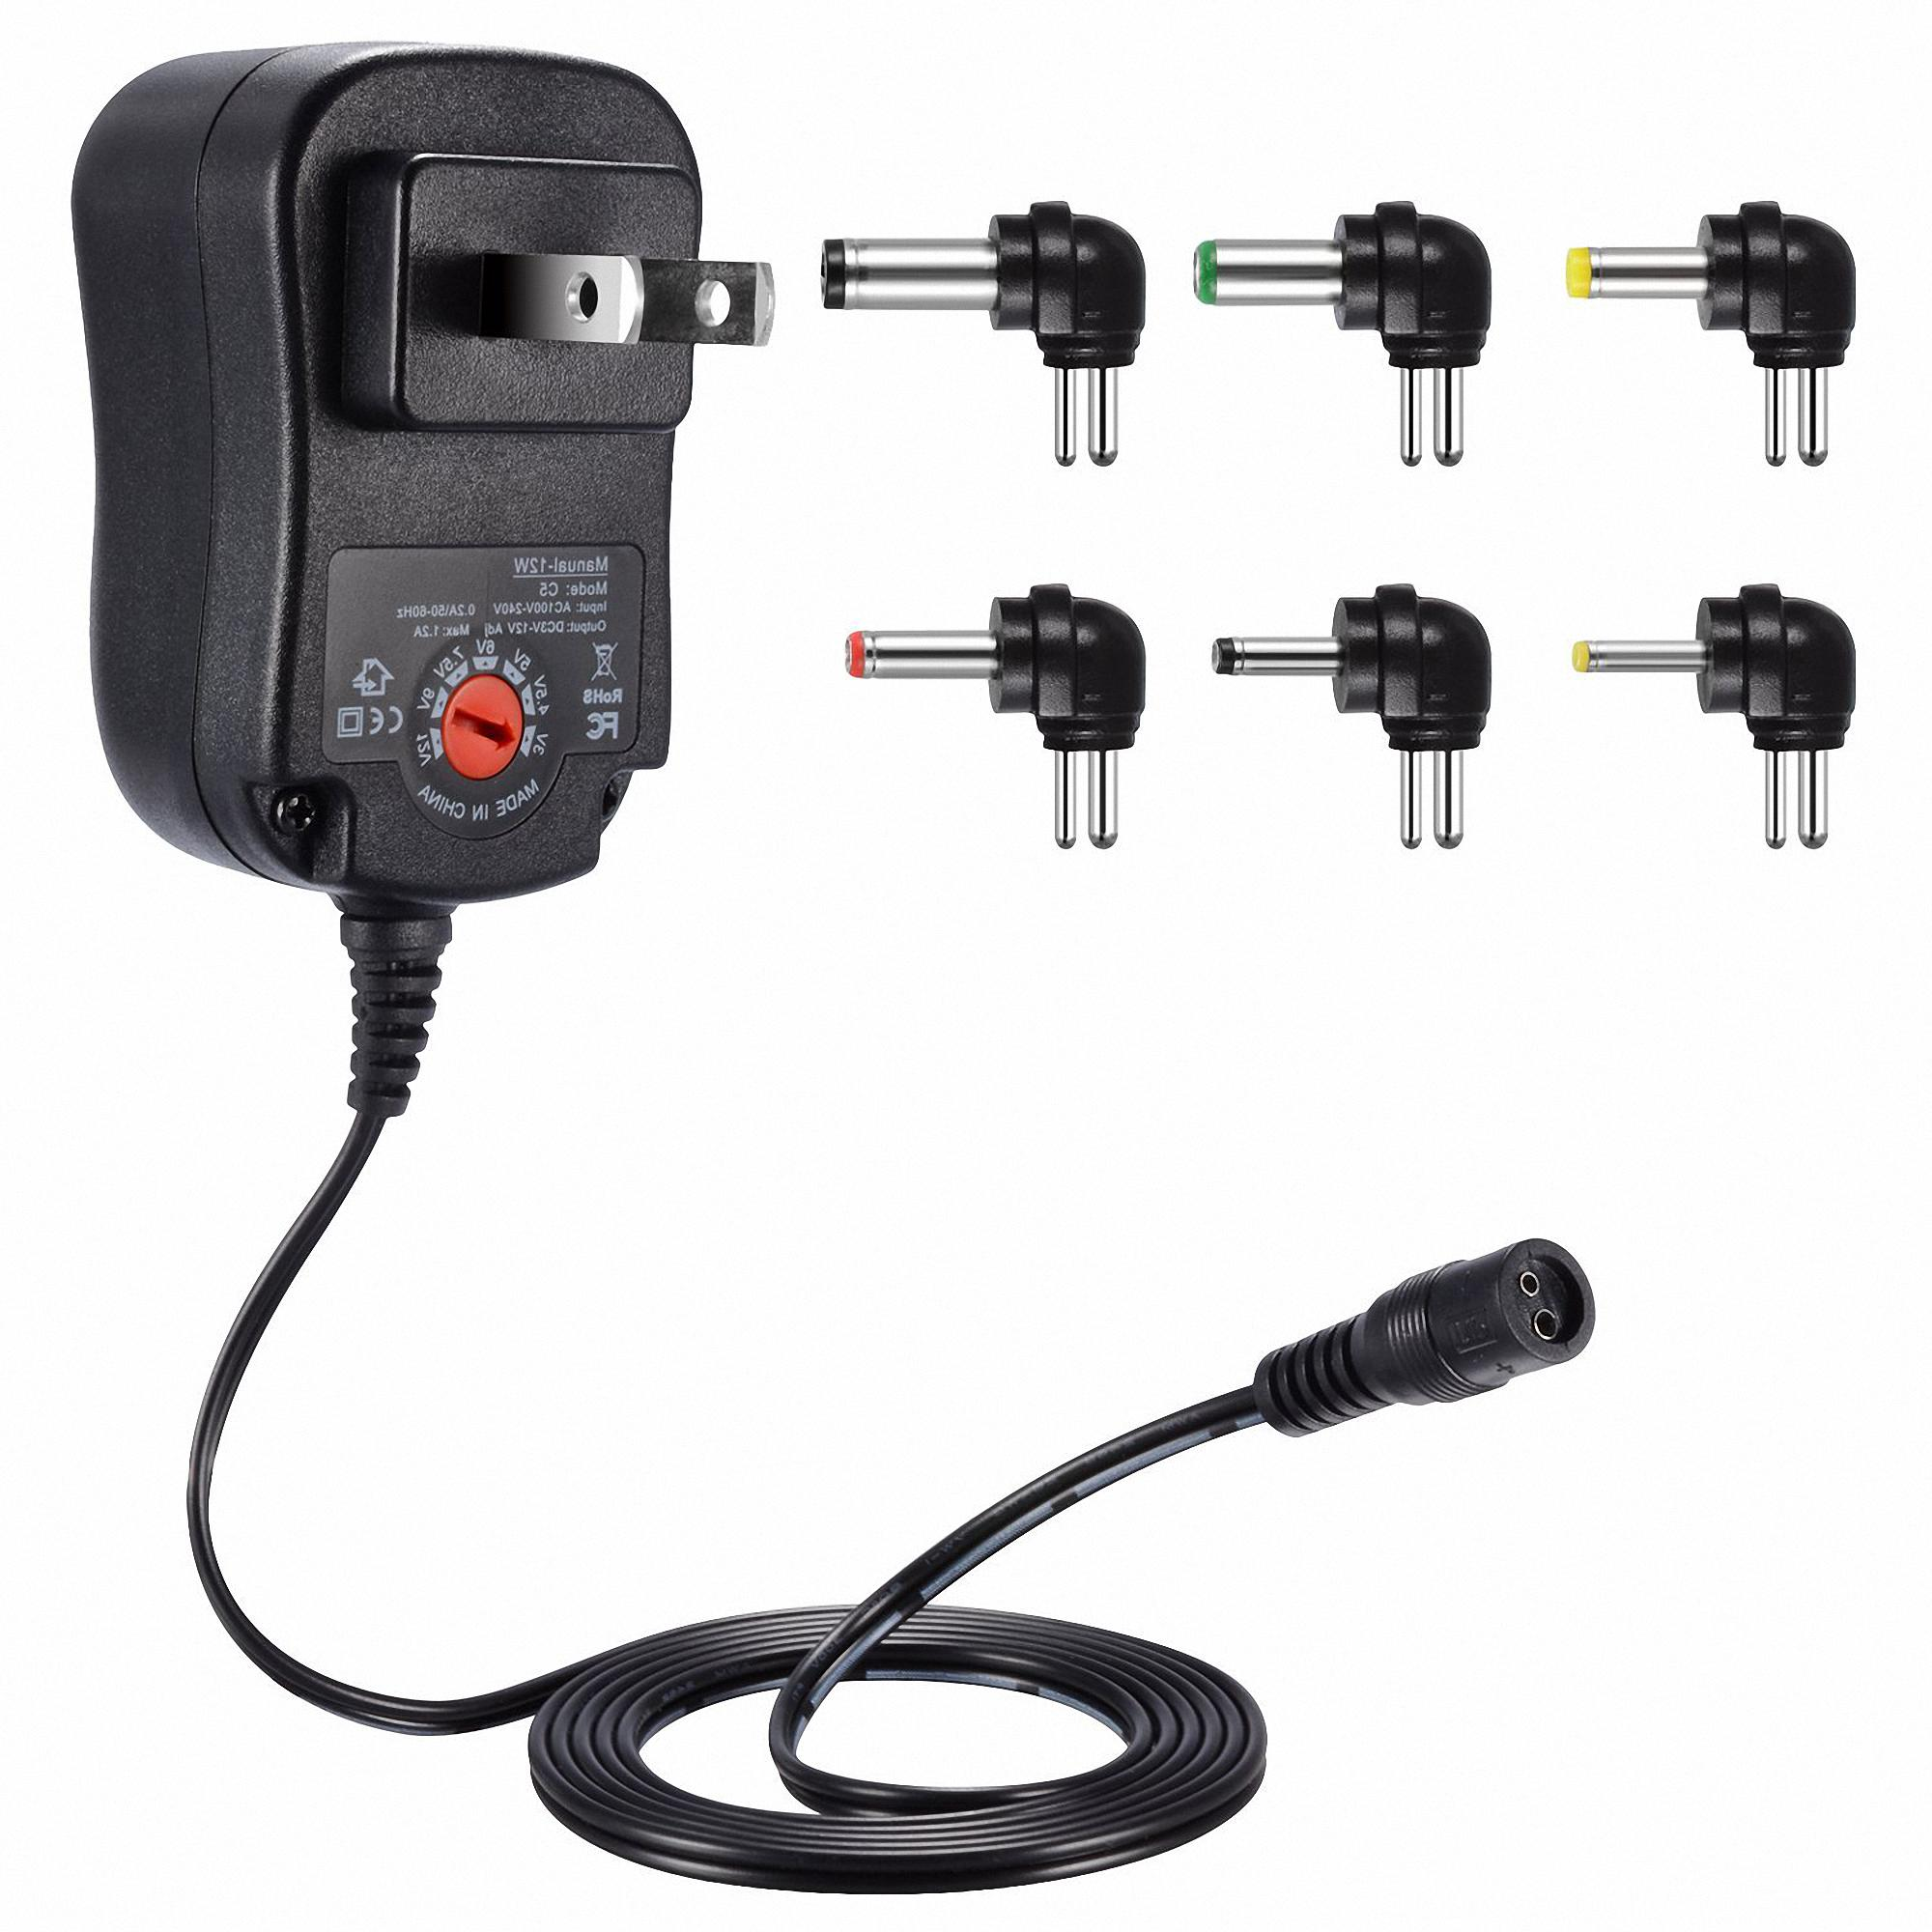 Dteck 12W Universal Charger AC/DC Adapter Switching Power Supply with 6 Selectable Adapter Plugs